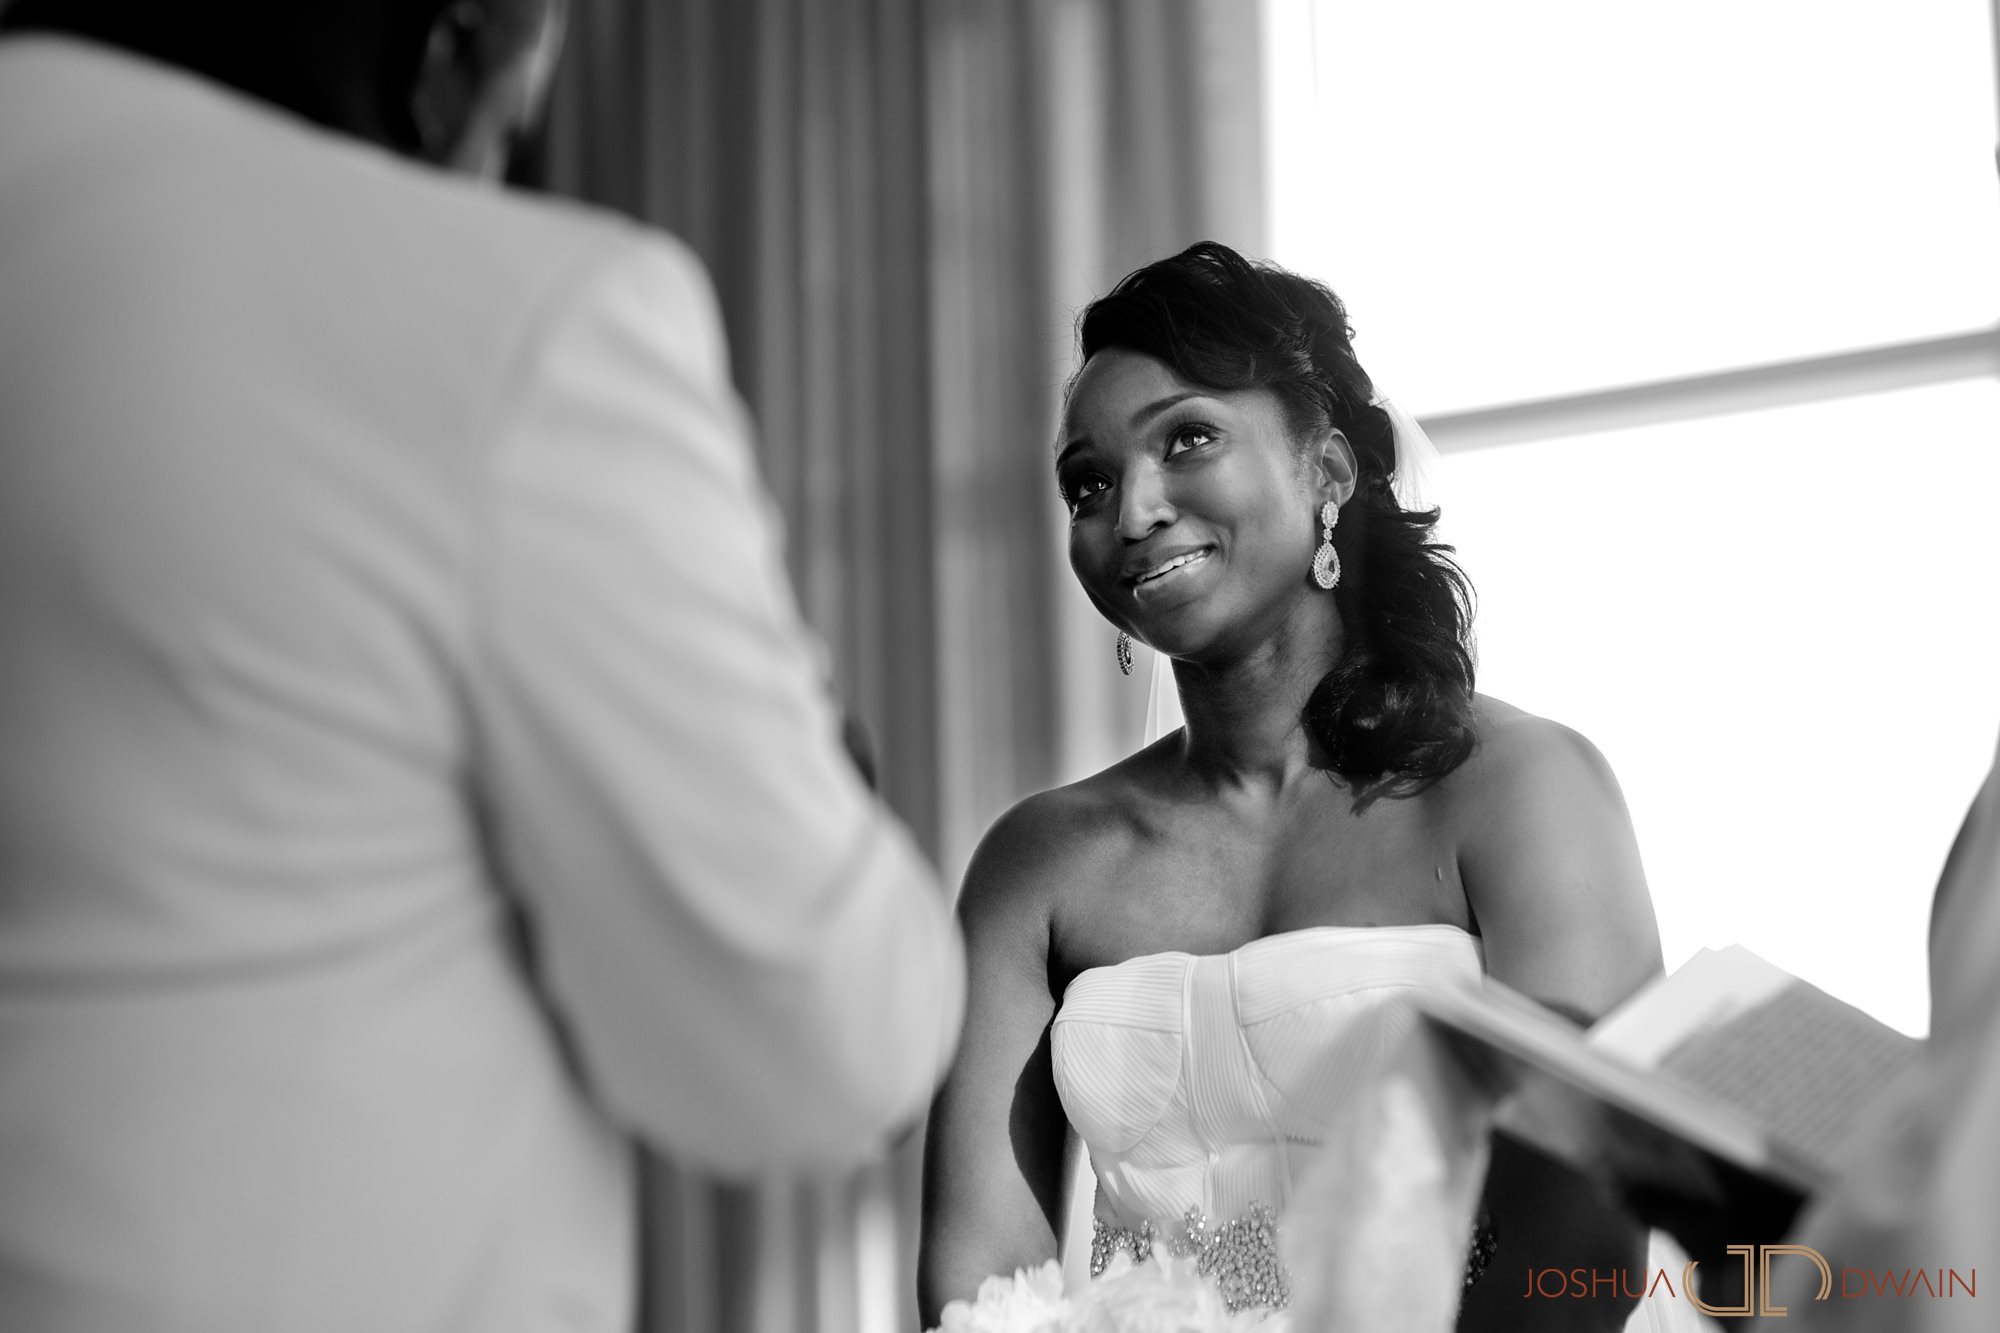 tasha-marcus-018-one-atlantic-atlantic-city-nj-wedding-photographer-joshua-dwain-tasha-marcus-025-one-atlantic-atlantic-city-nj-wedding-photographer-joshua-dwain-2012-05-27_tm_364